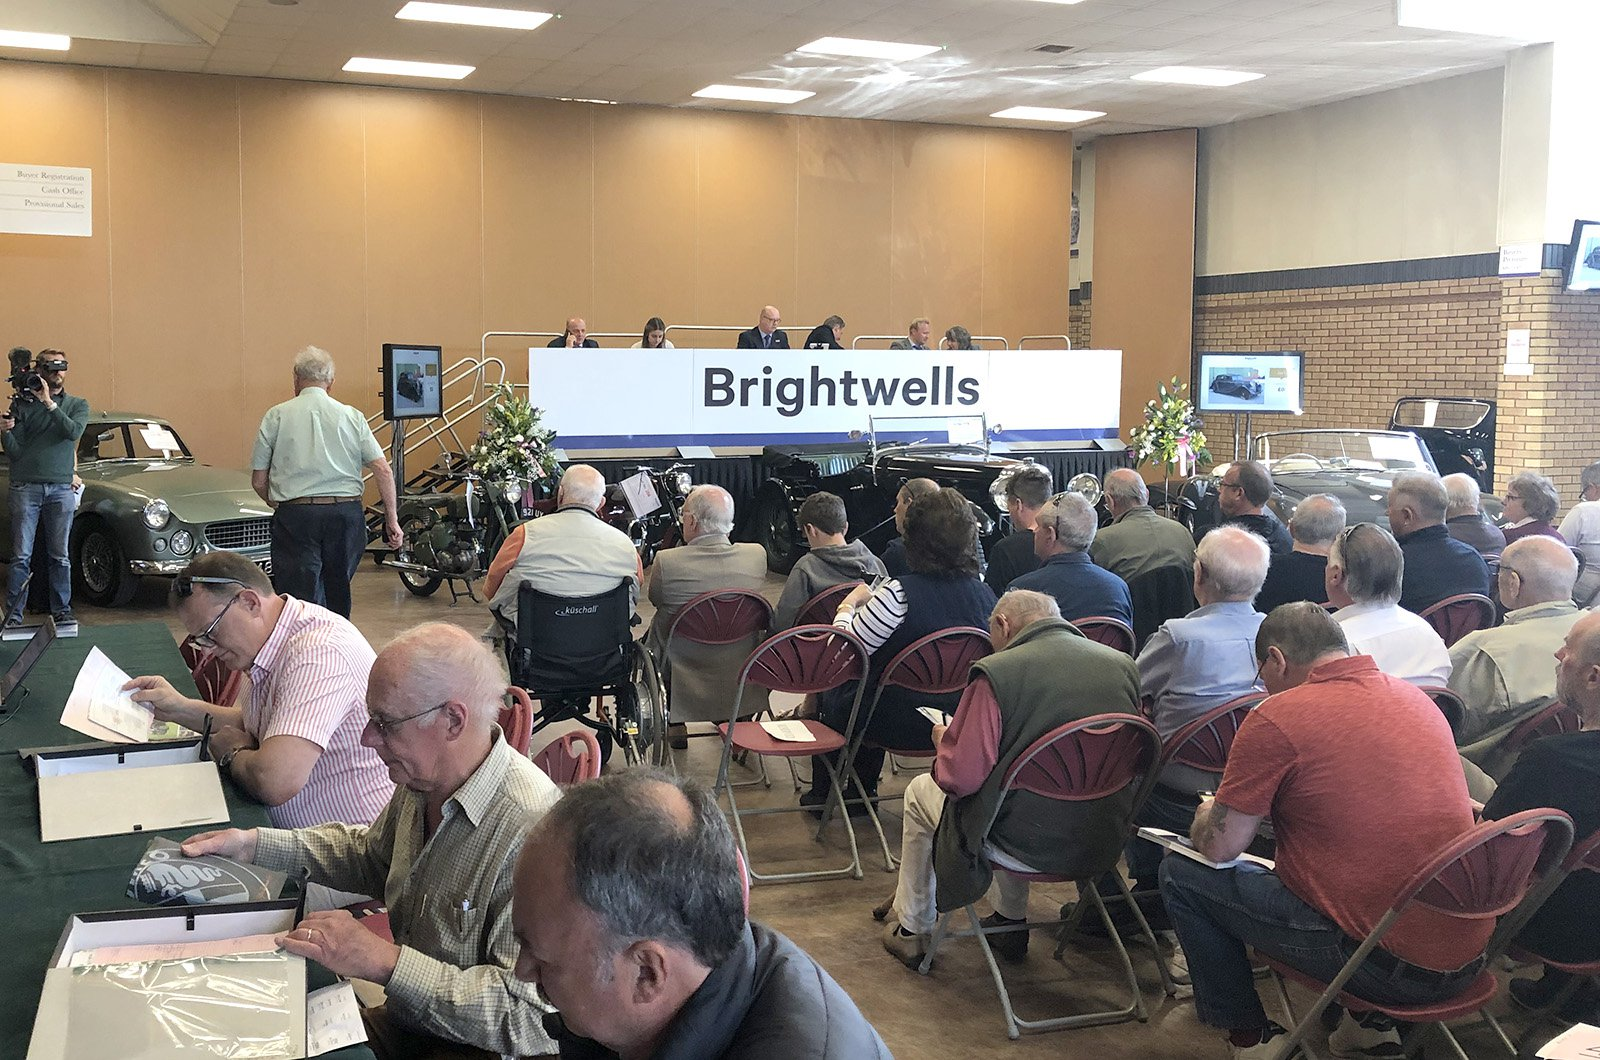 Bidders sat in front of Brightwells car auction table